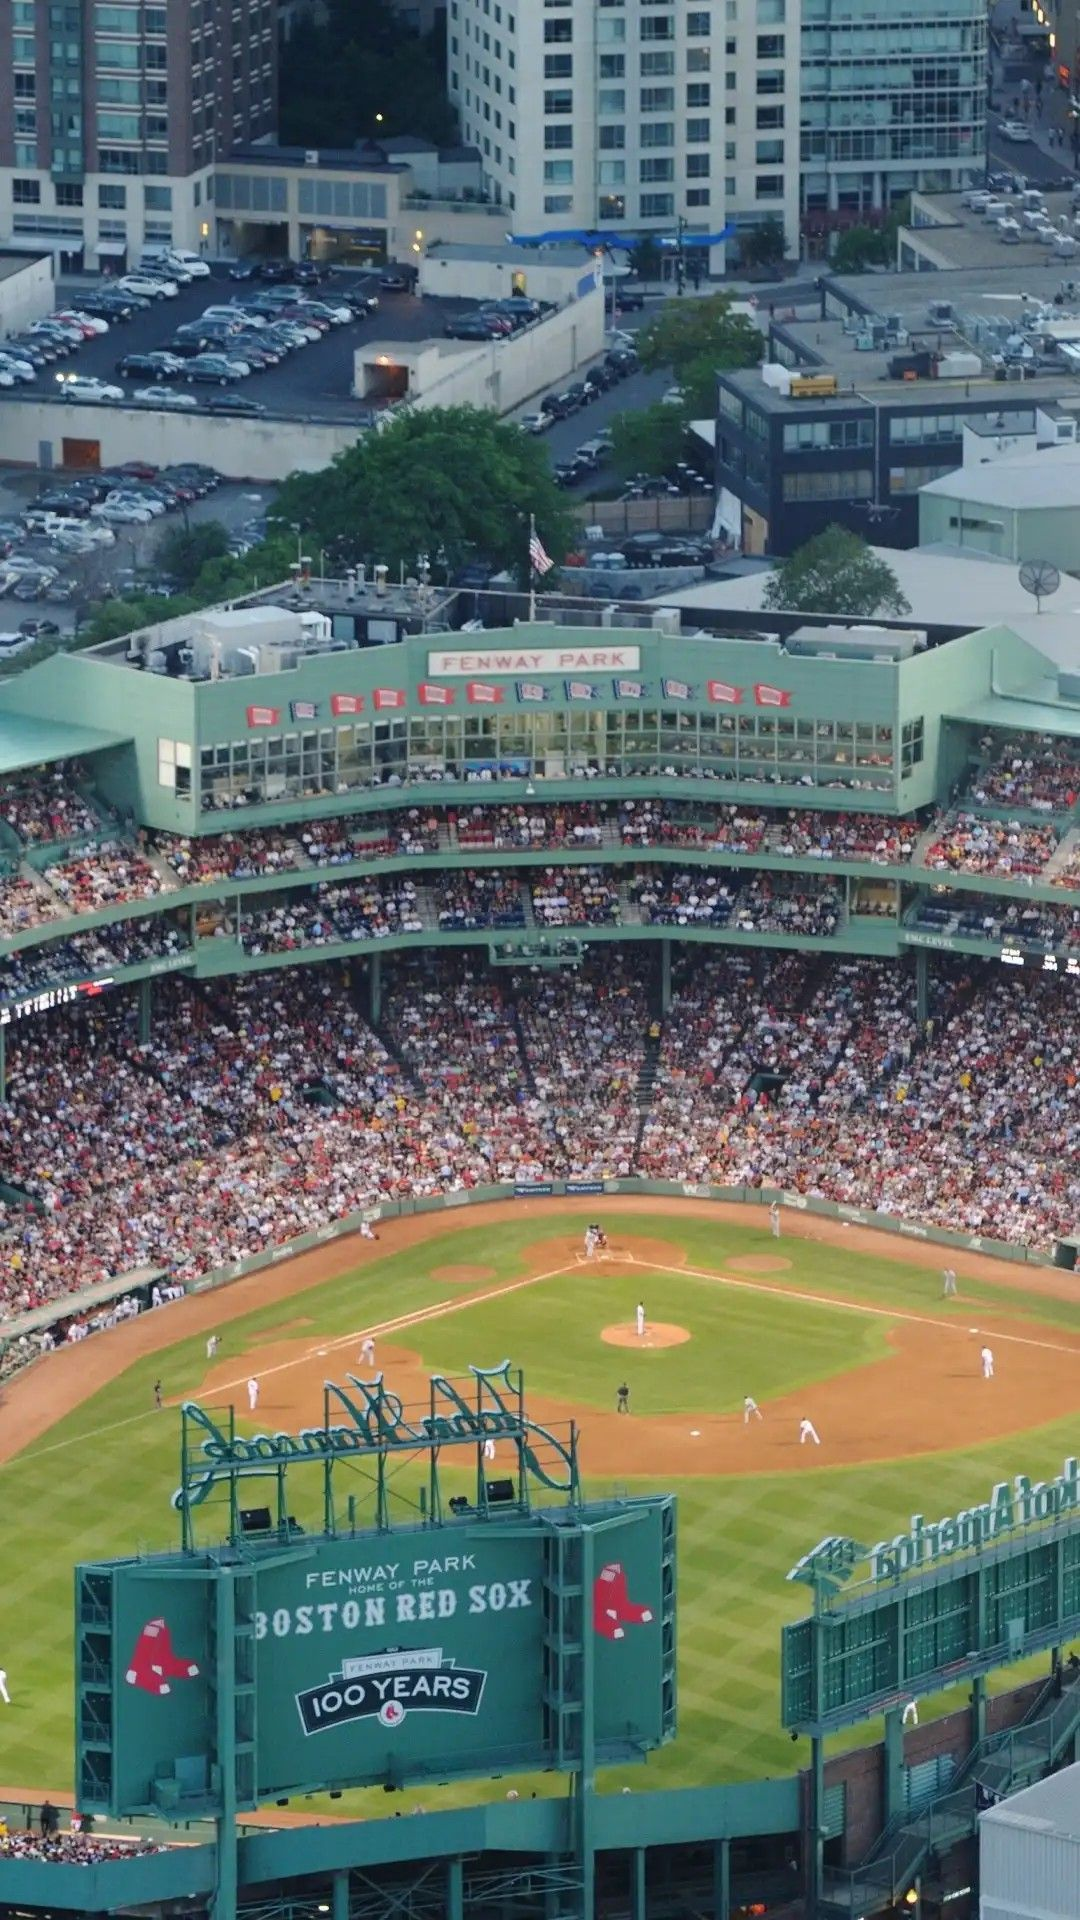 Boston Red Sox In 2021 Red Sox Wallpaper Boston Red Sox Wallpaper Boston Red Sox